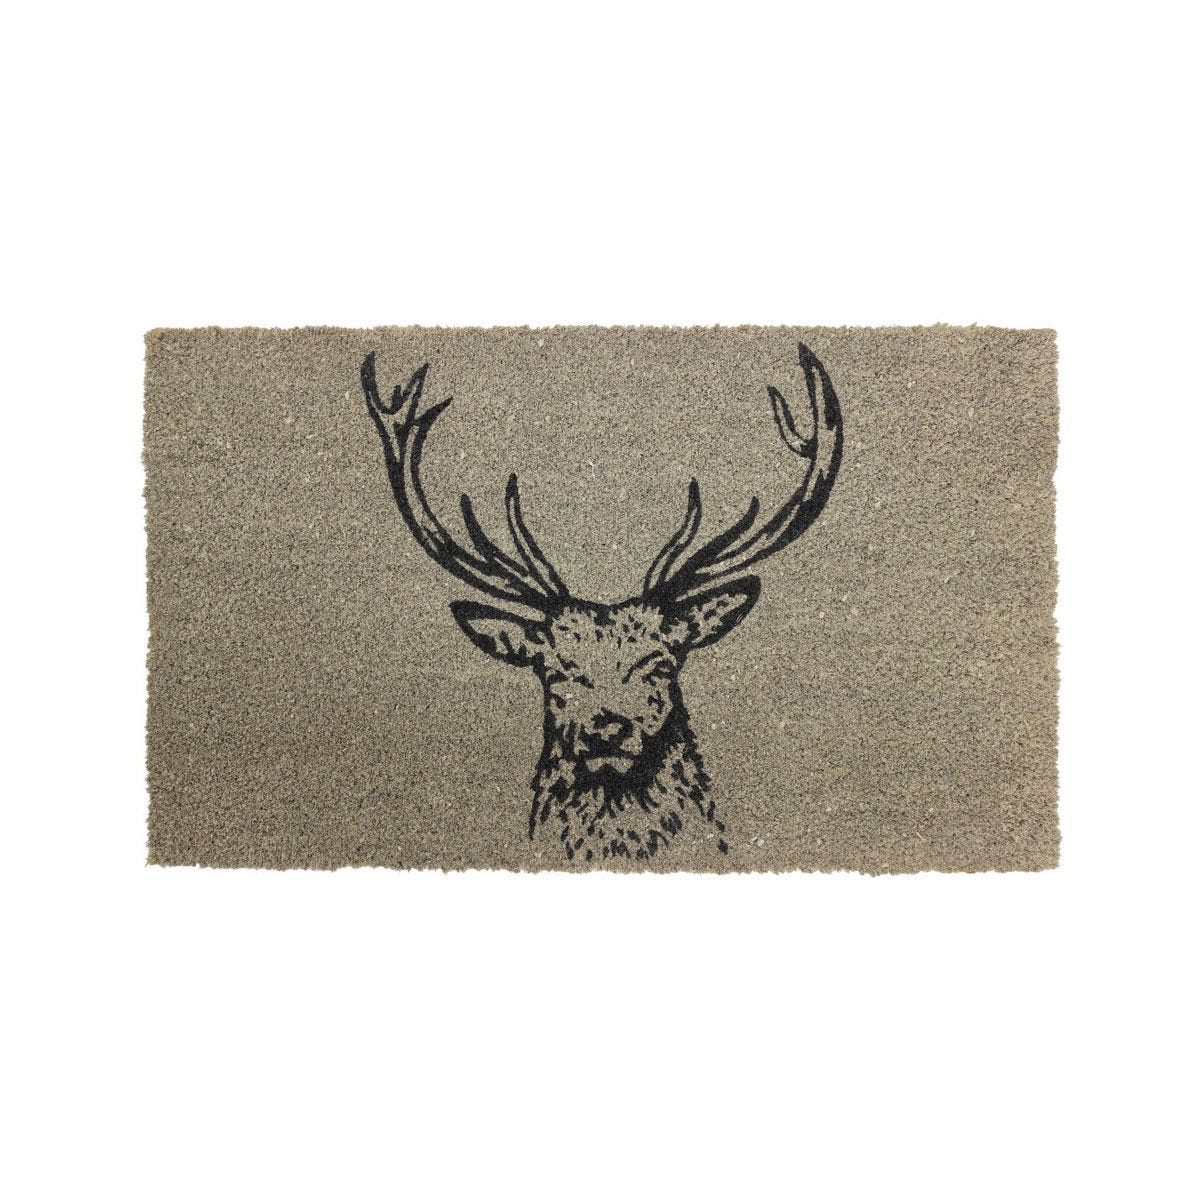 JVL Neutral 45 x 75cm Latex Backed Coir Entrance Door Mat - Stag